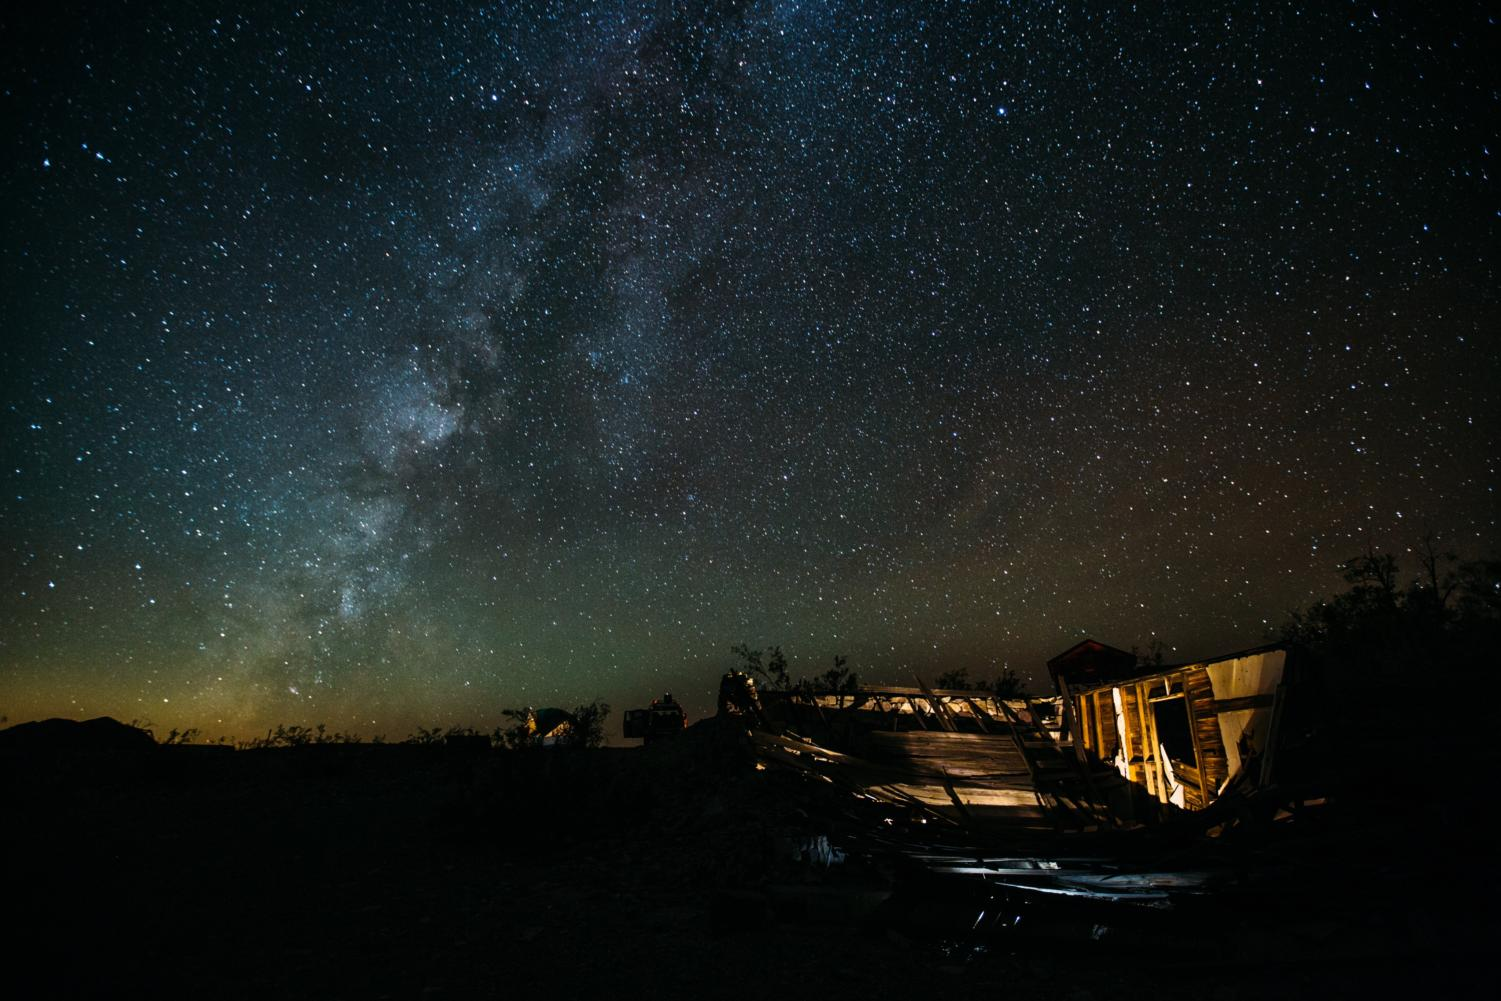 Stars Above the Paranormal: The Milky Way spilling over a decrepit cabin on October 22, 2017. Photo by anonymous.